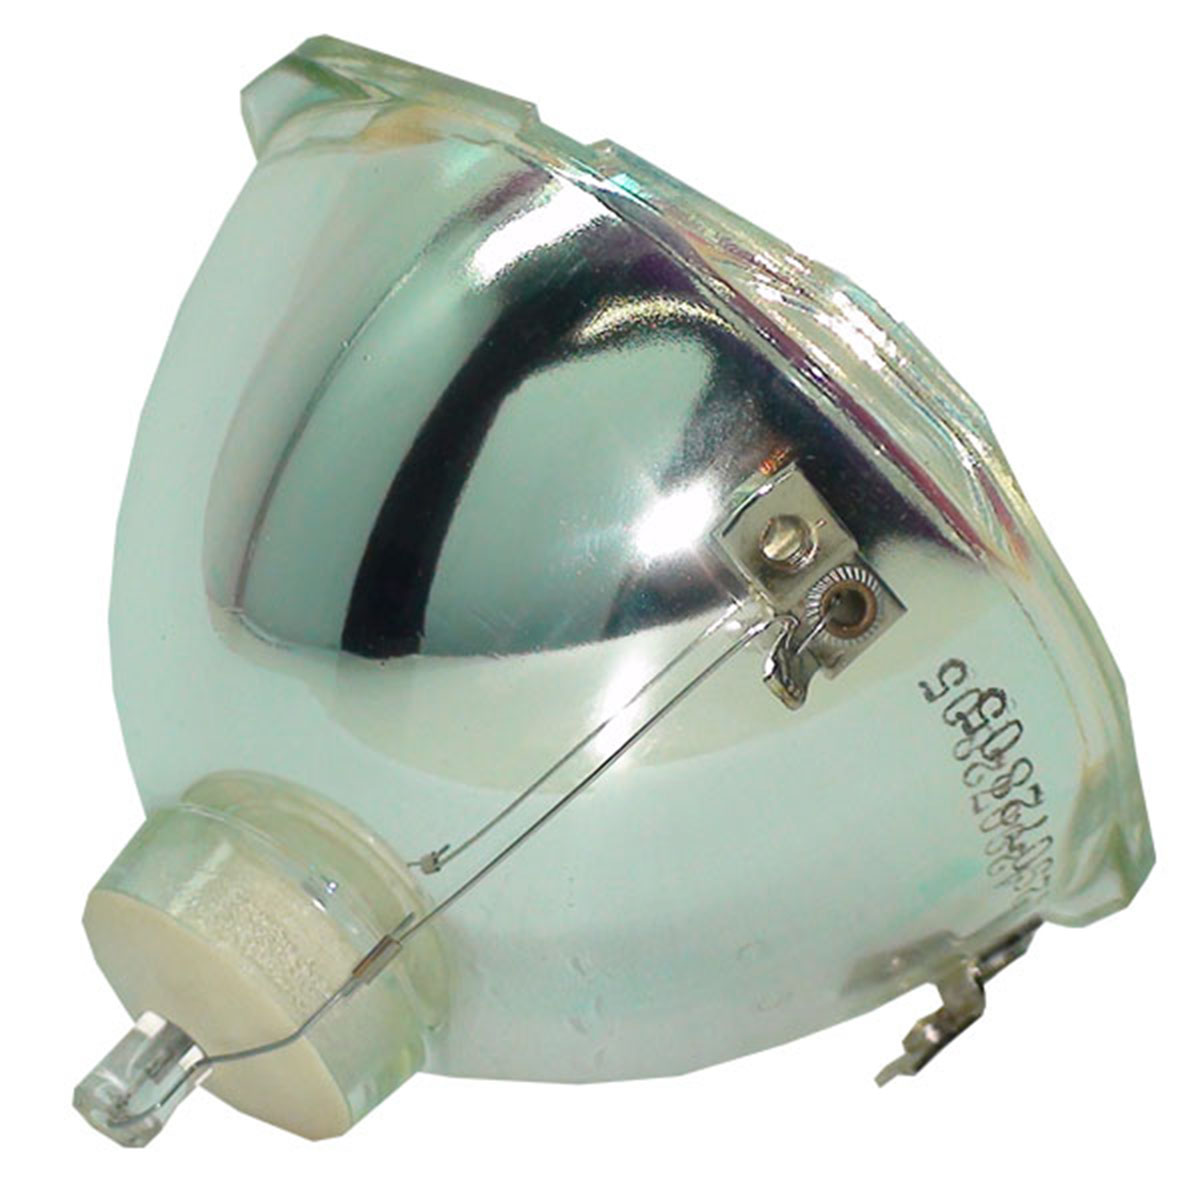 Lutema Platinum for Delta AV-3620 Projector Lamp (Bulb Only) - image 3 of 5